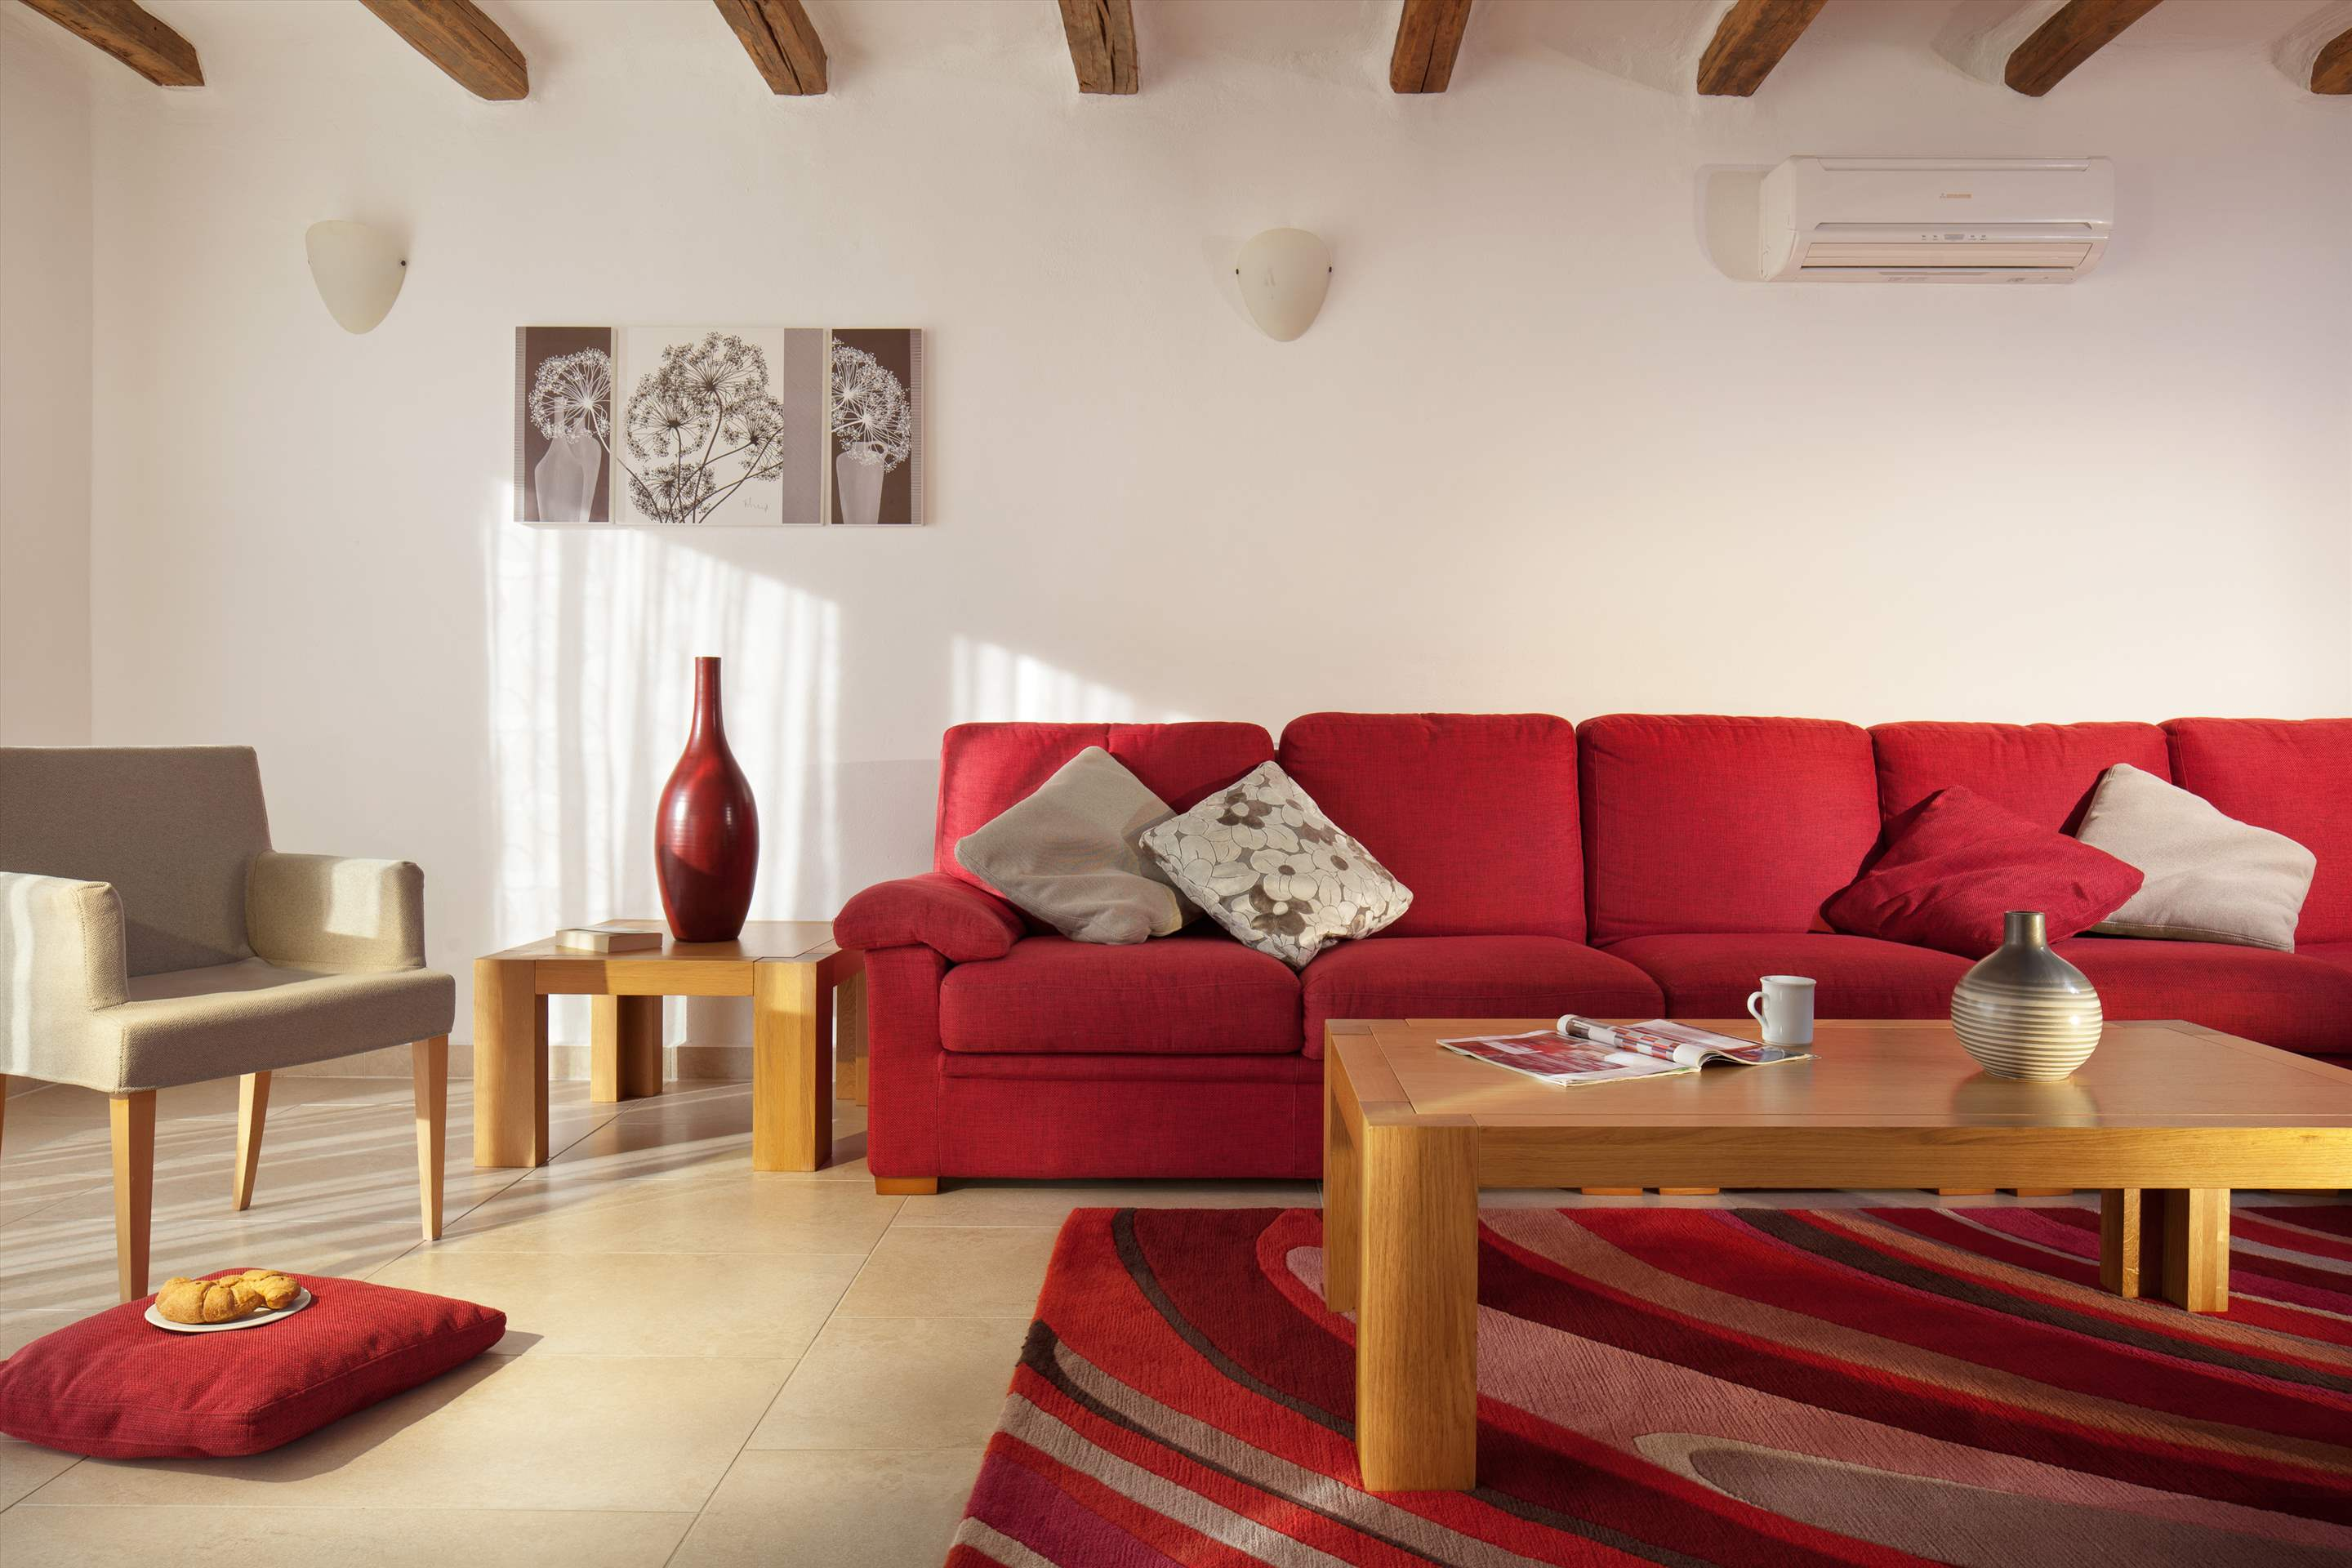 Villa Daymond, 4 bedroom villa in Western Coast- Porec - Umag & Inland, Croatia Photo #8